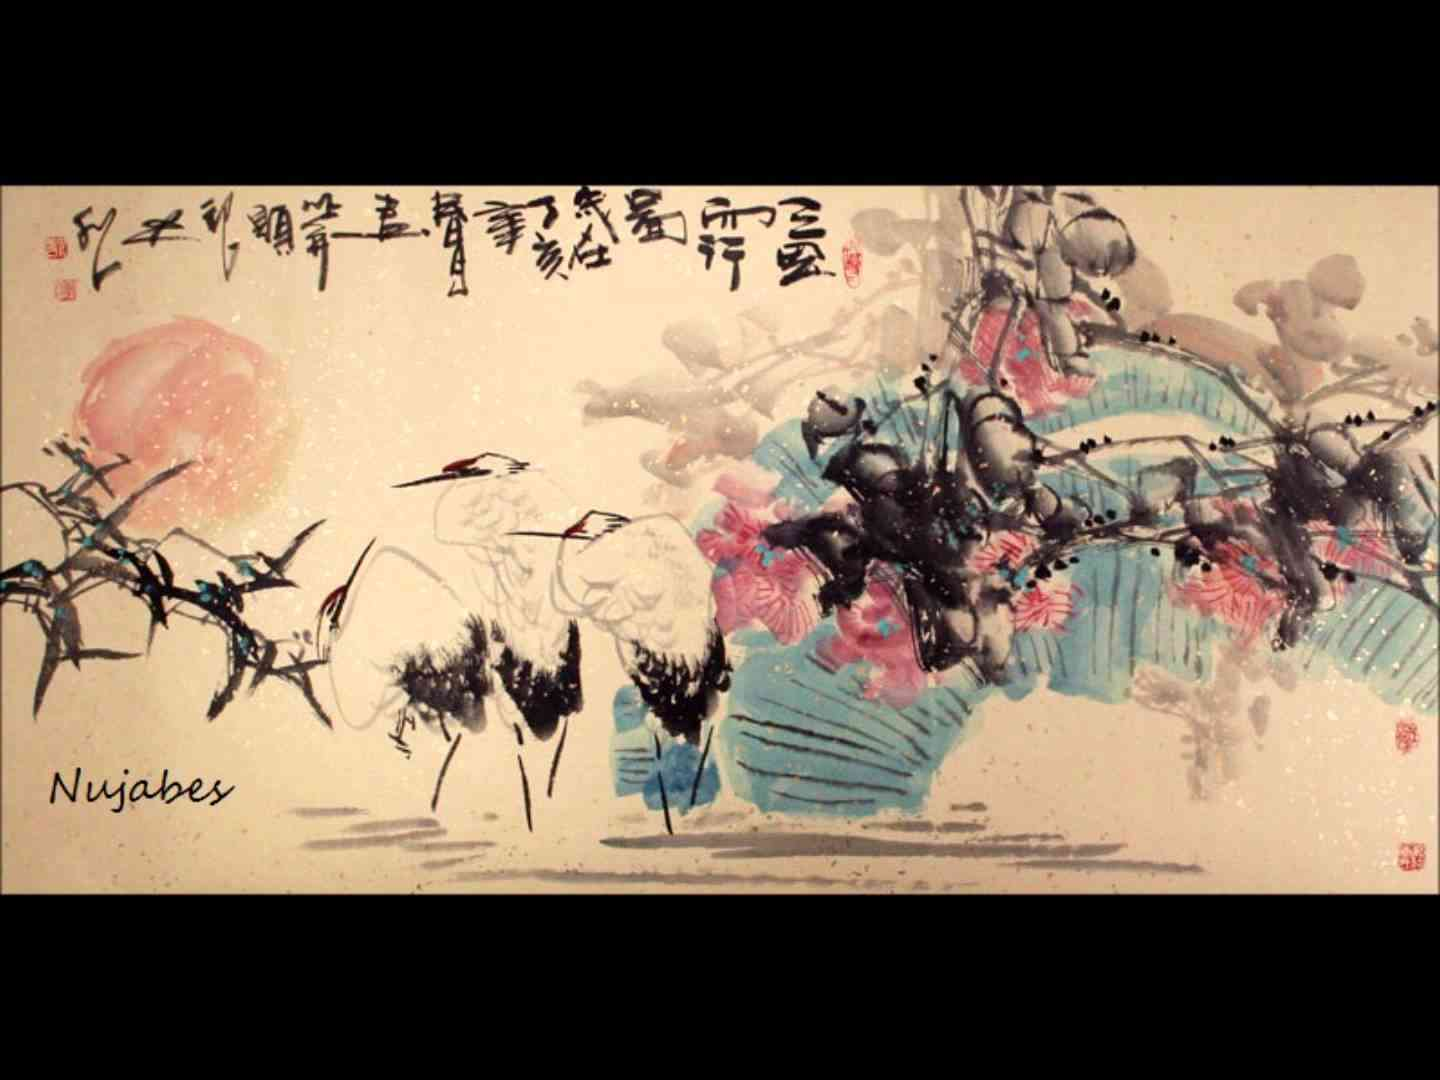 Nujabes - Soul Searching - YouTube